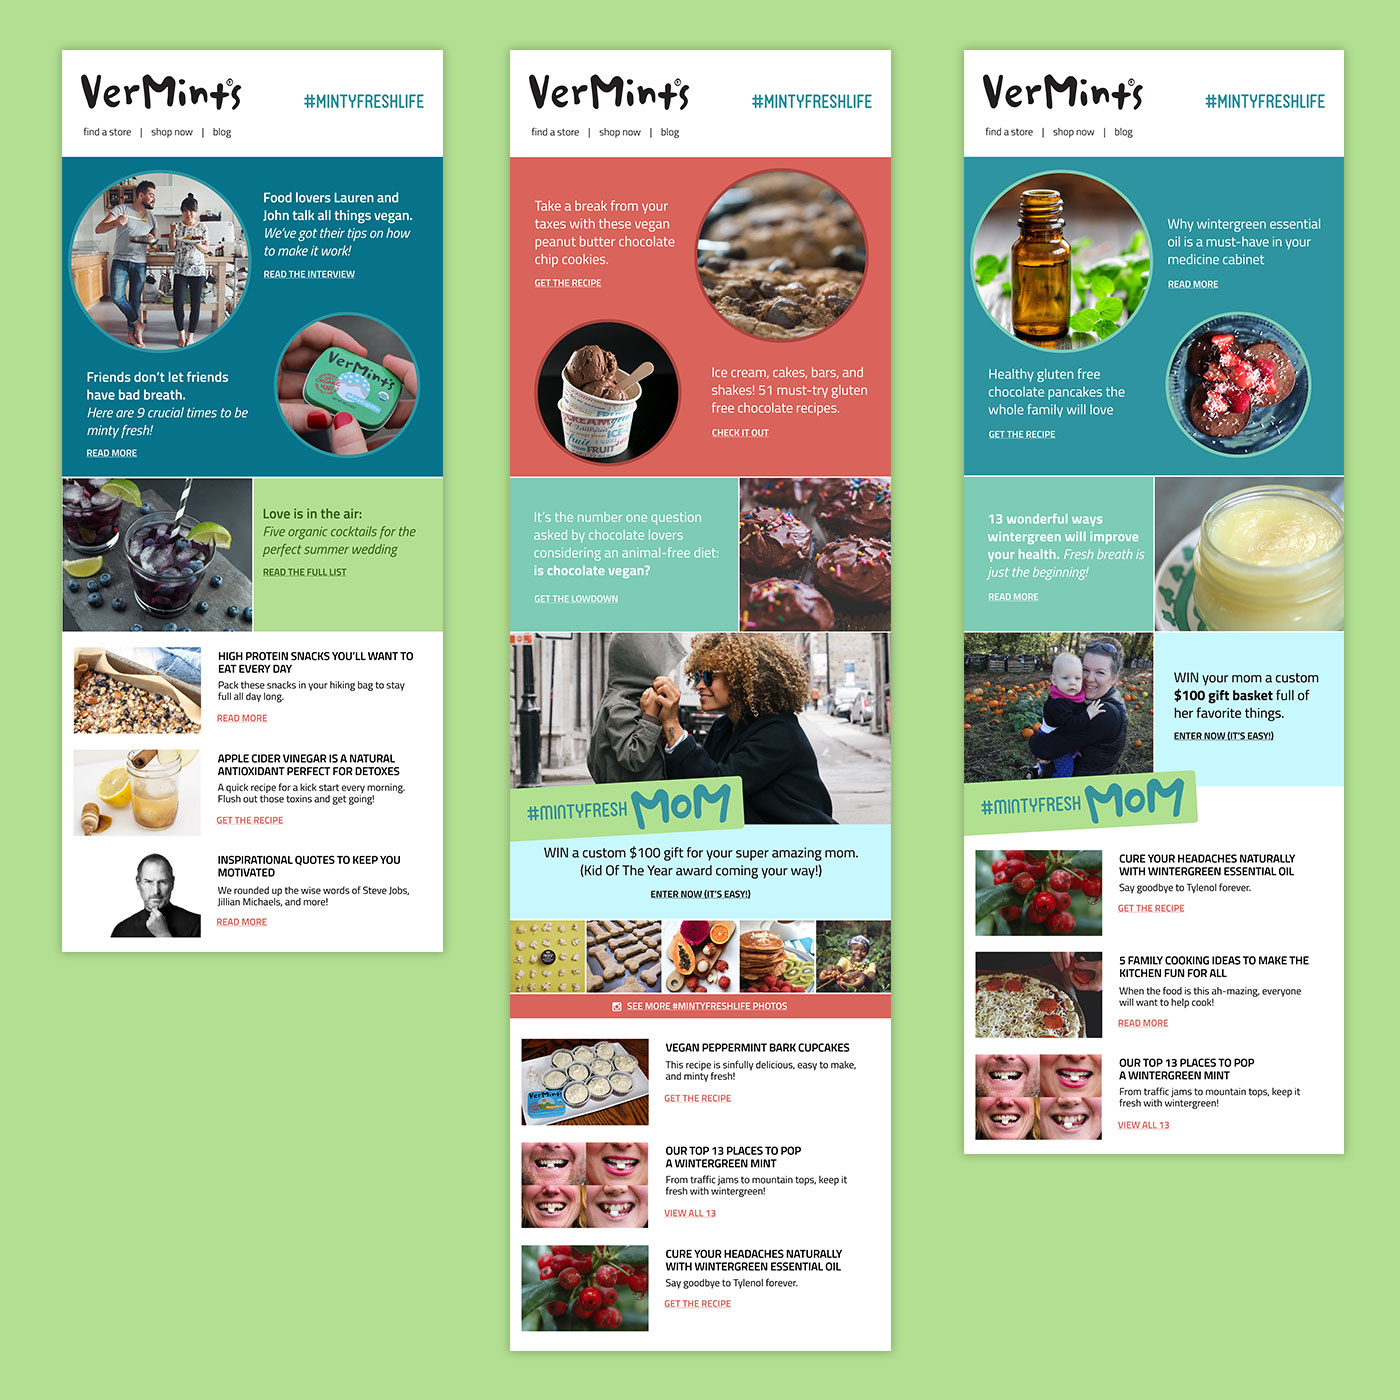 Content and social media marketing strategy and design for VerMints, by Flipside Creative.